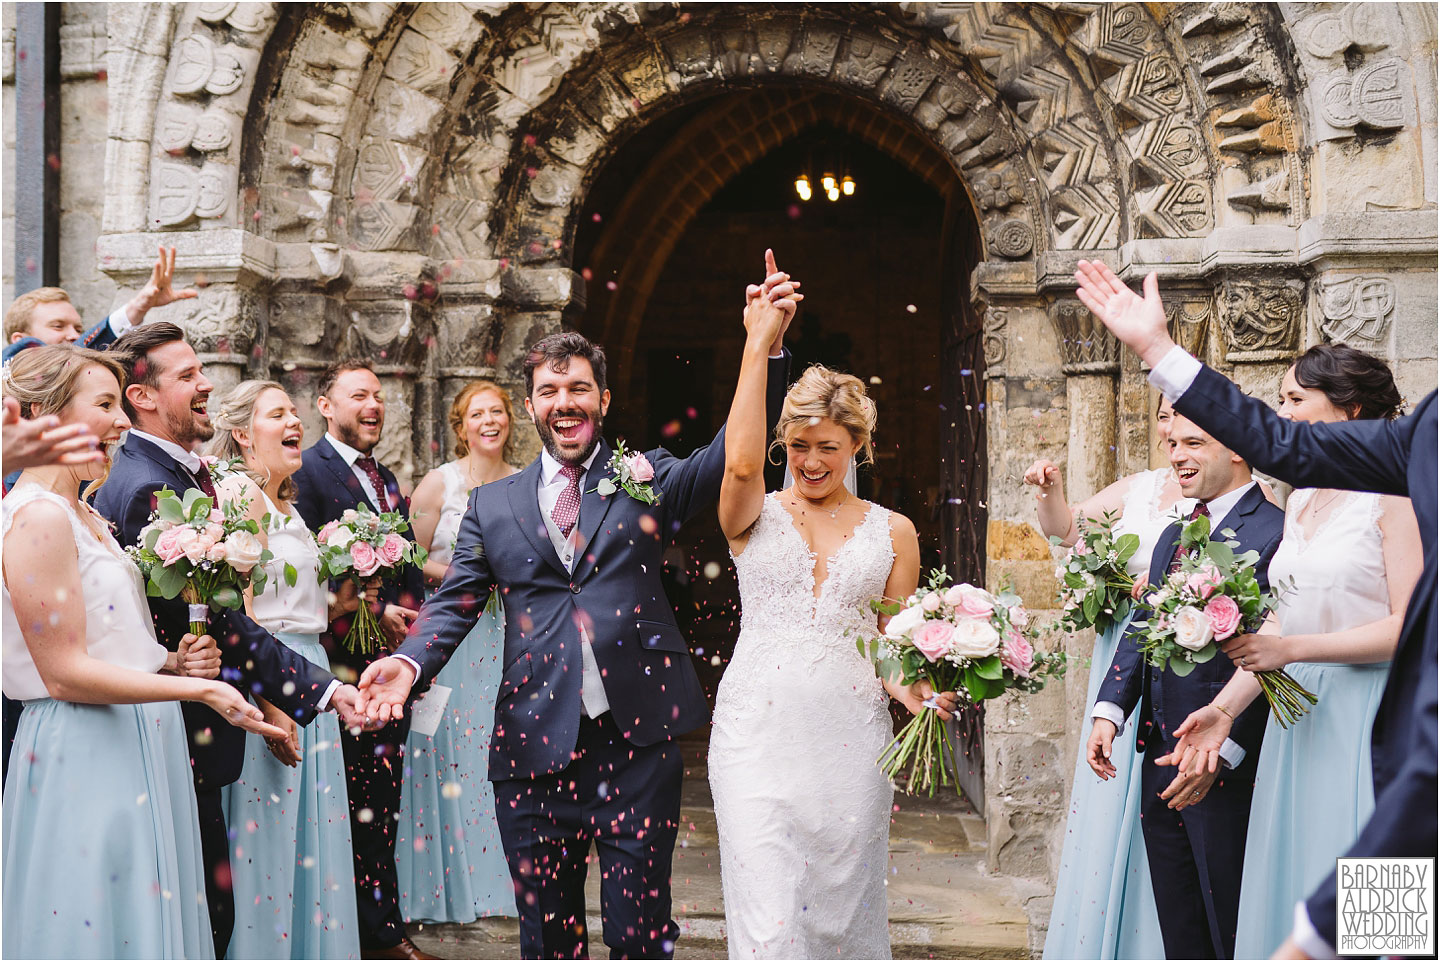 Church confetti before a Papakata Sperry Tent Garden Wedding reception, Garden Marquee Wedding, Papakata Sperry Tent Wedding, Sperry Tent Marquee Wedding, Yorkshire garden Marquee Wedding company